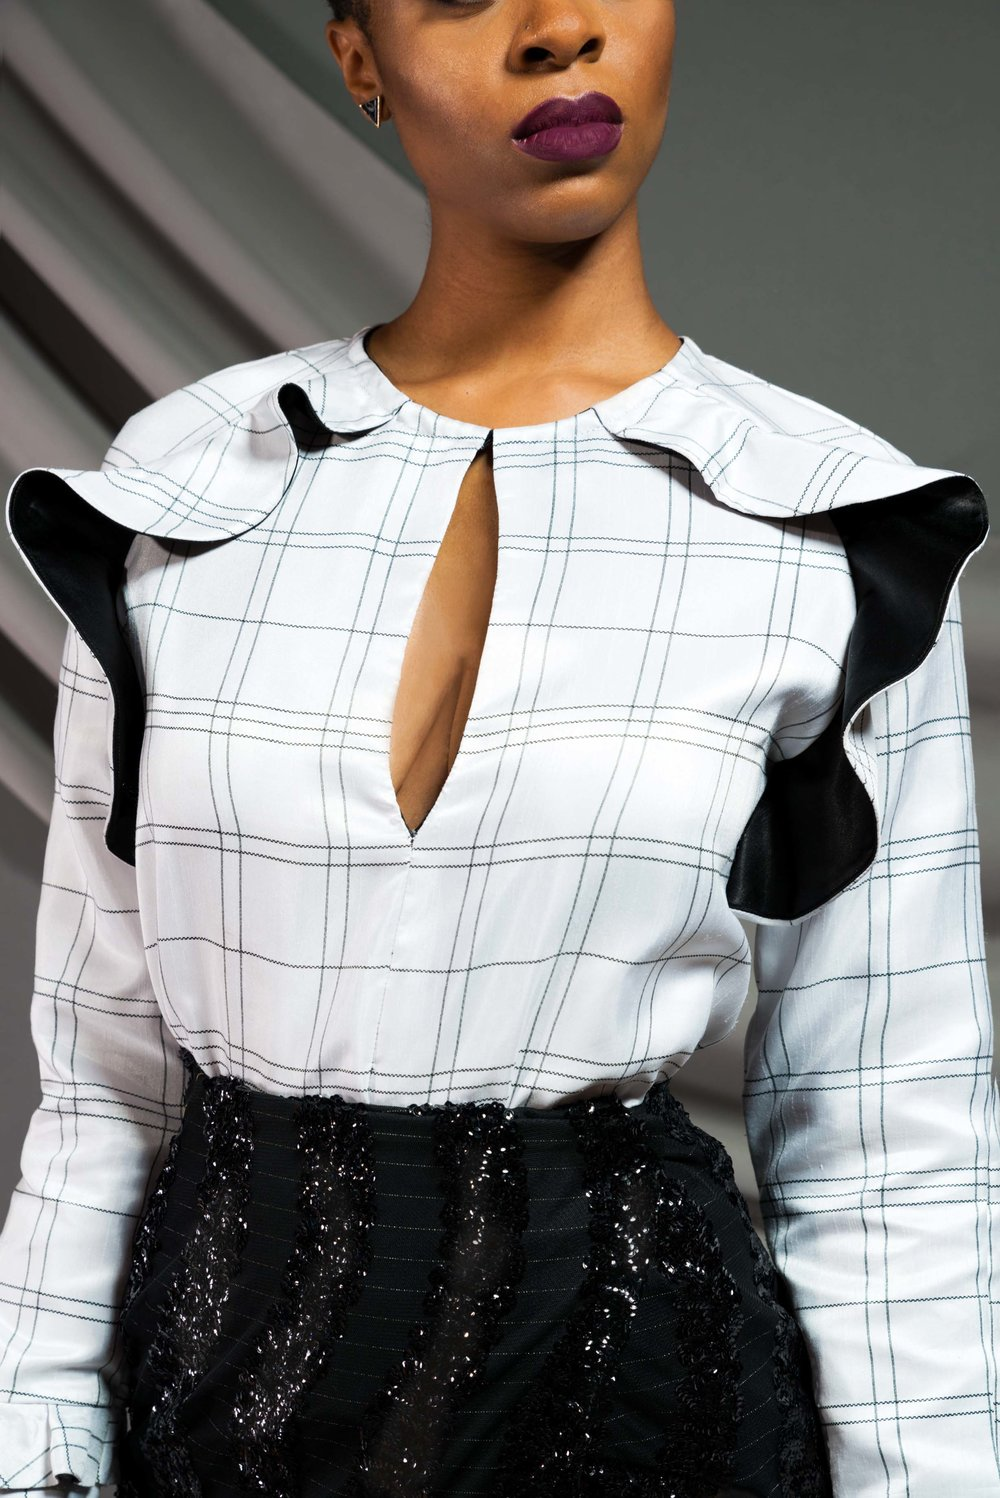 bw-split-skirt-front-detail2.jpg